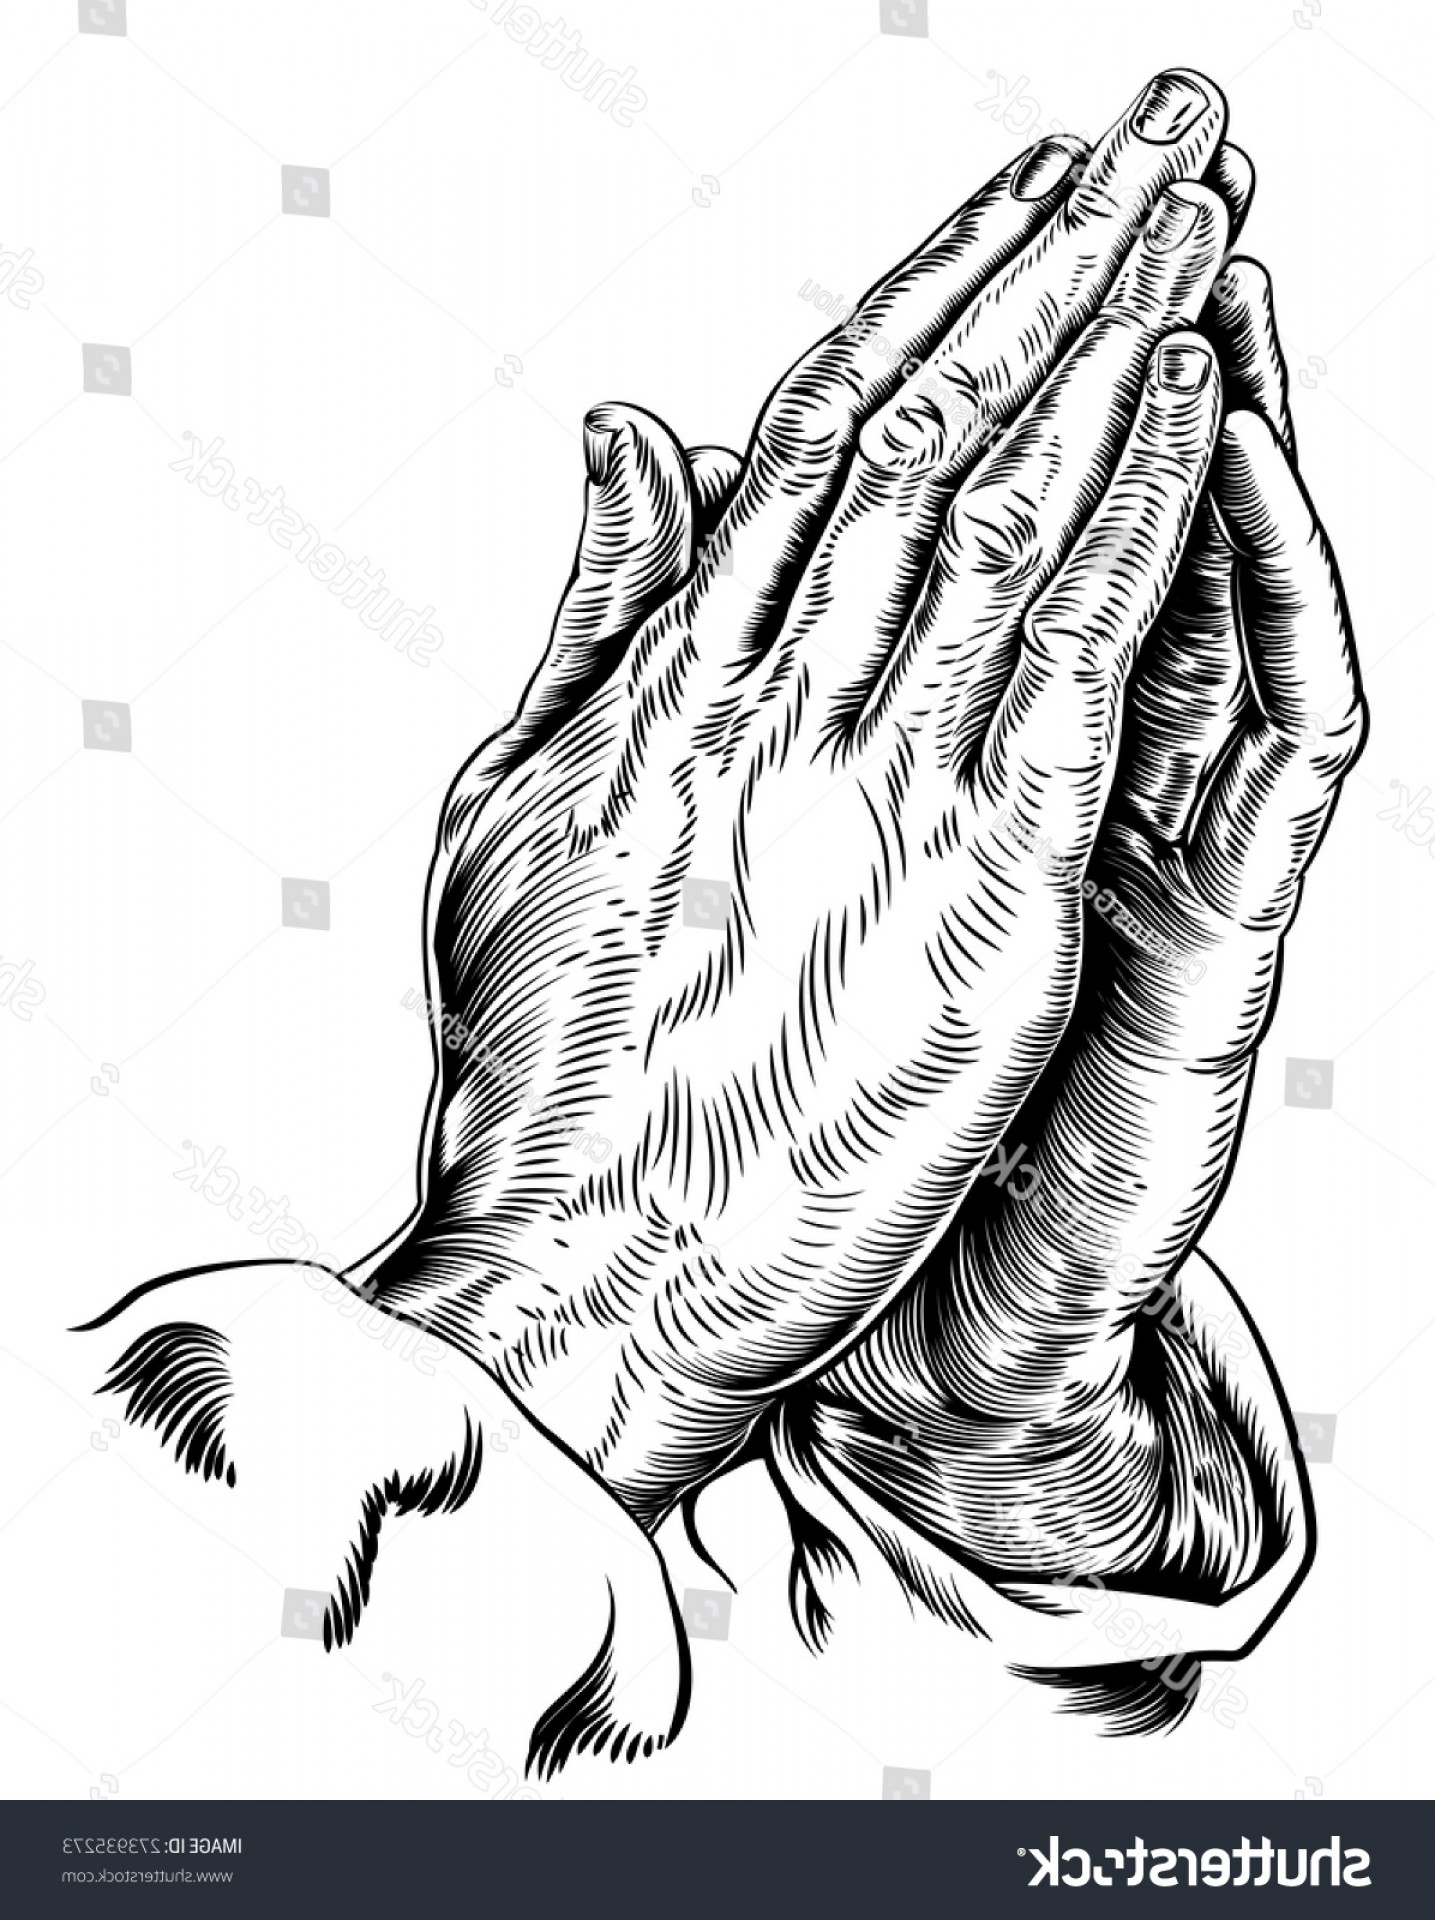 Praying Hands Vectors Shutterstock: Vector Illustration Praying Hands Inspired By